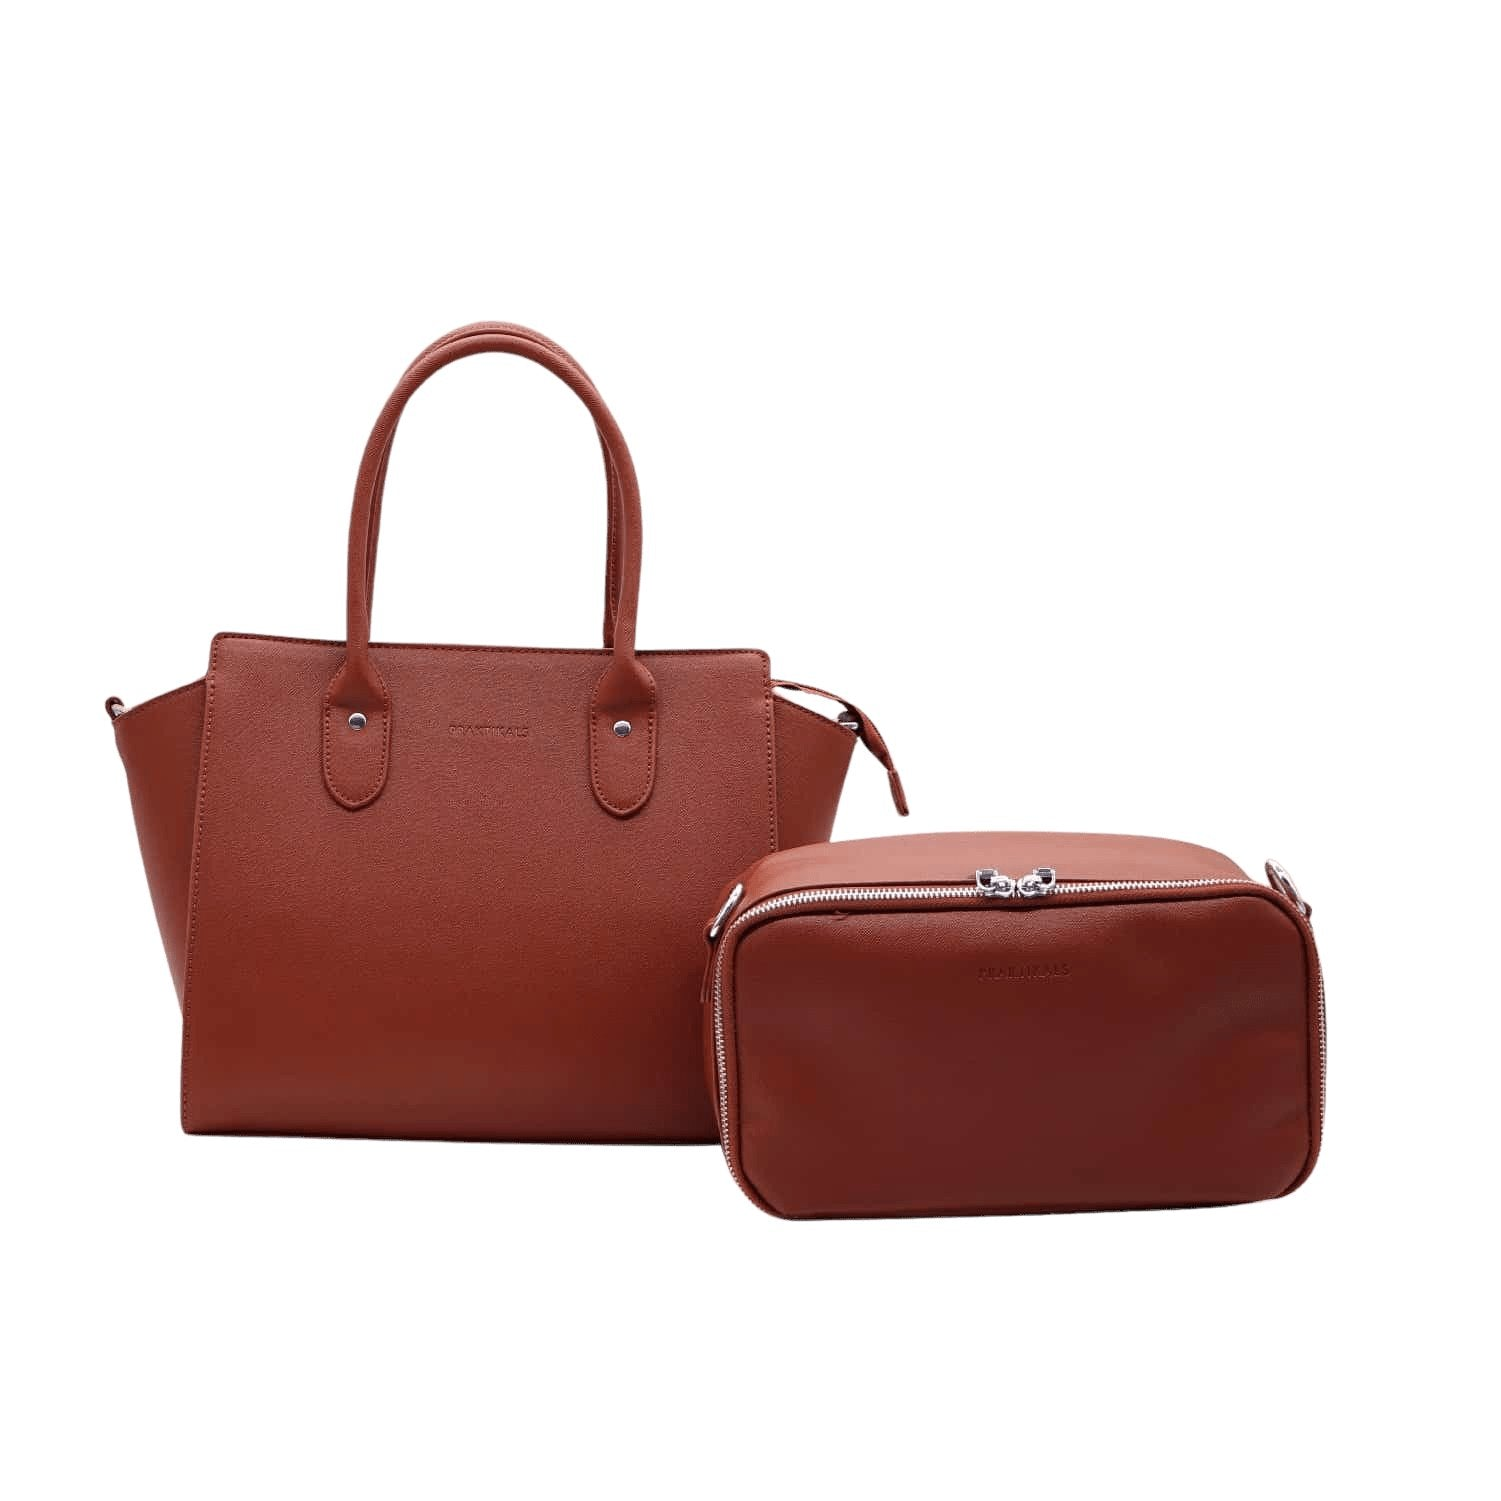 Bella Handbag with Designer Lunch Tote Praktikals handbags Praktikals Brown